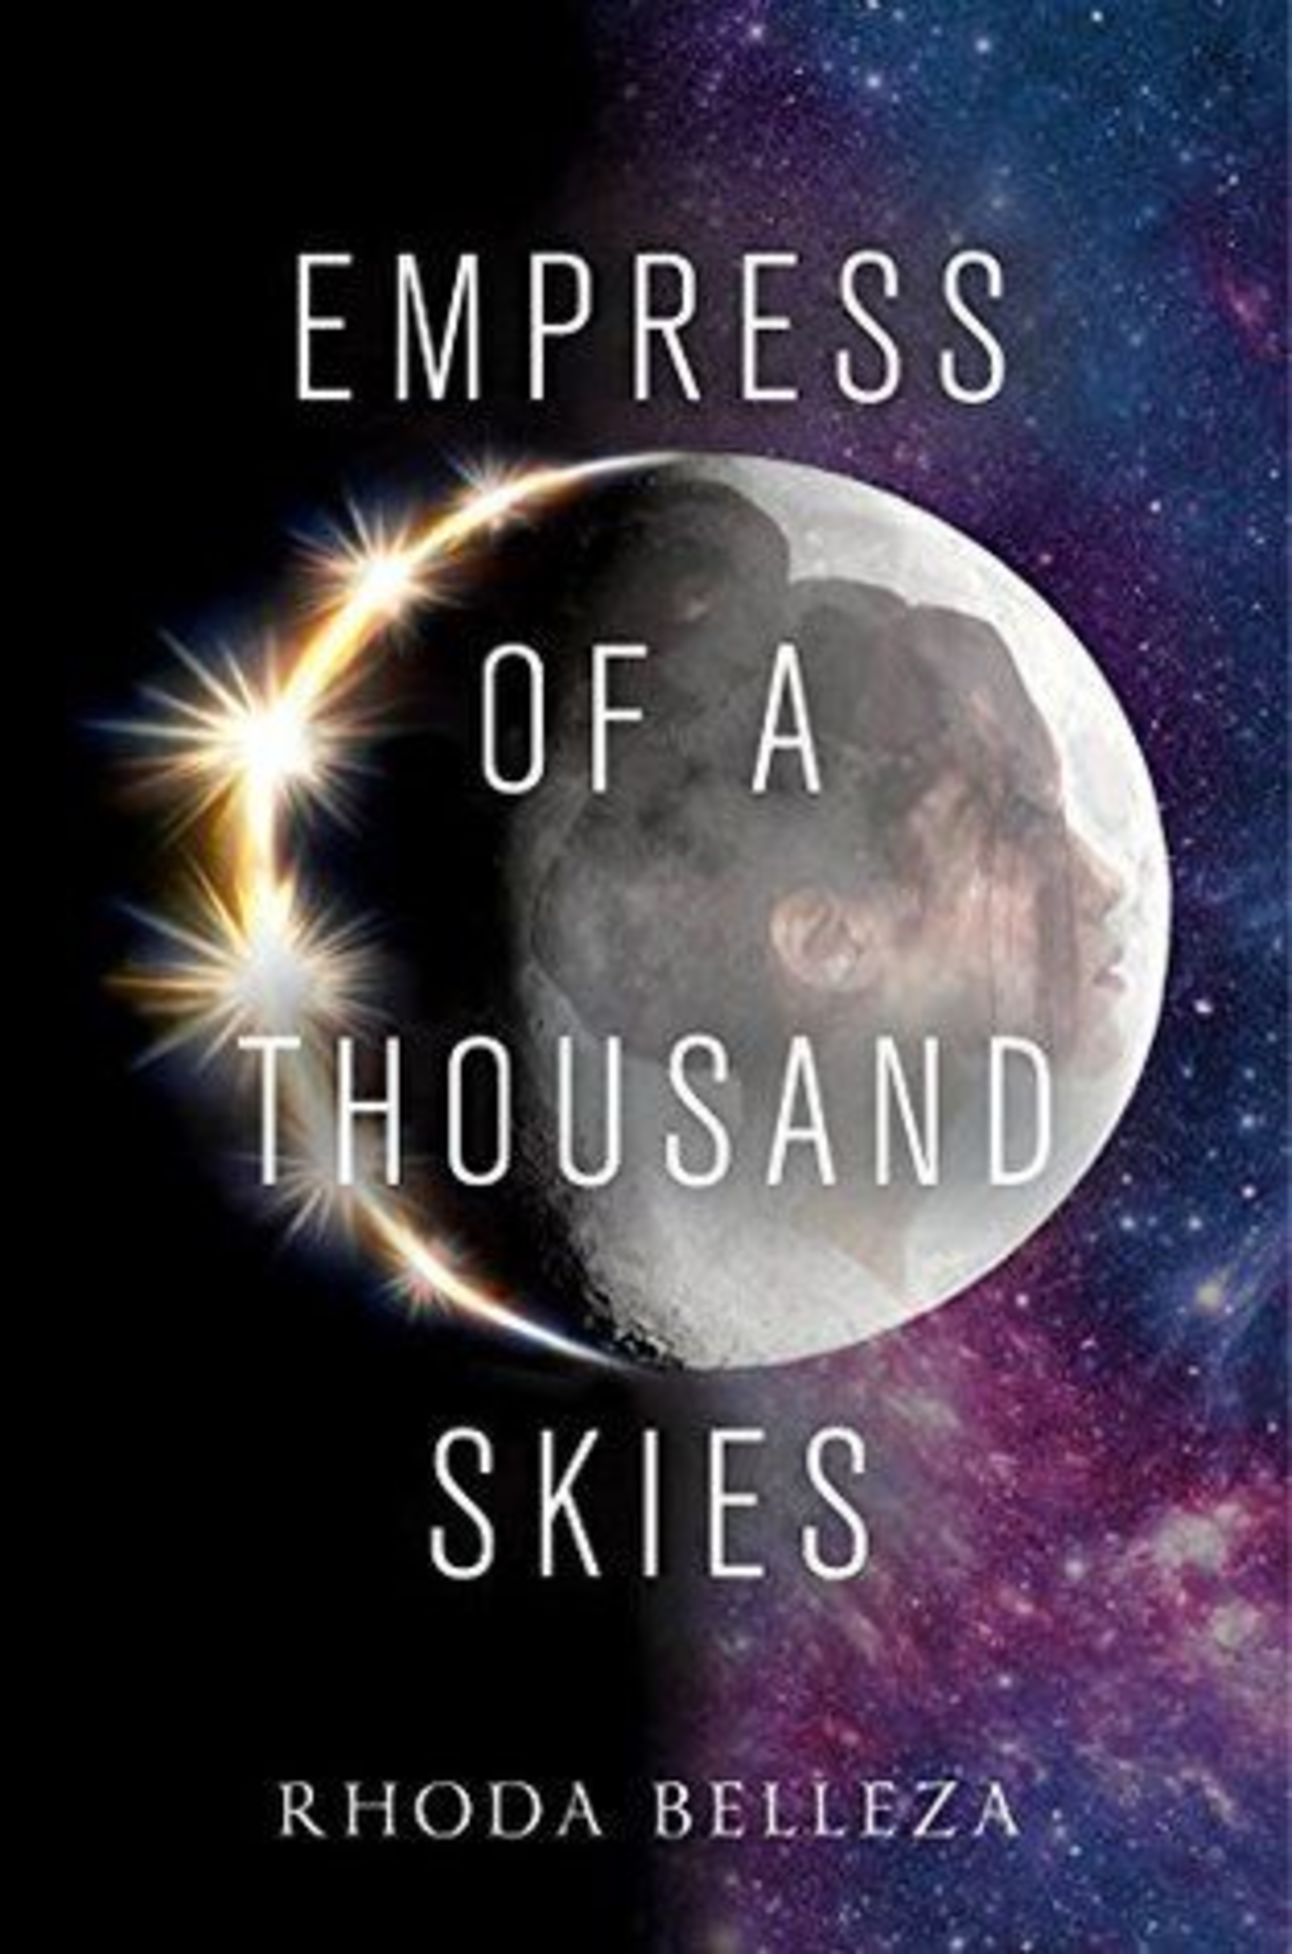 empress-of-a-thousand-skies-cover